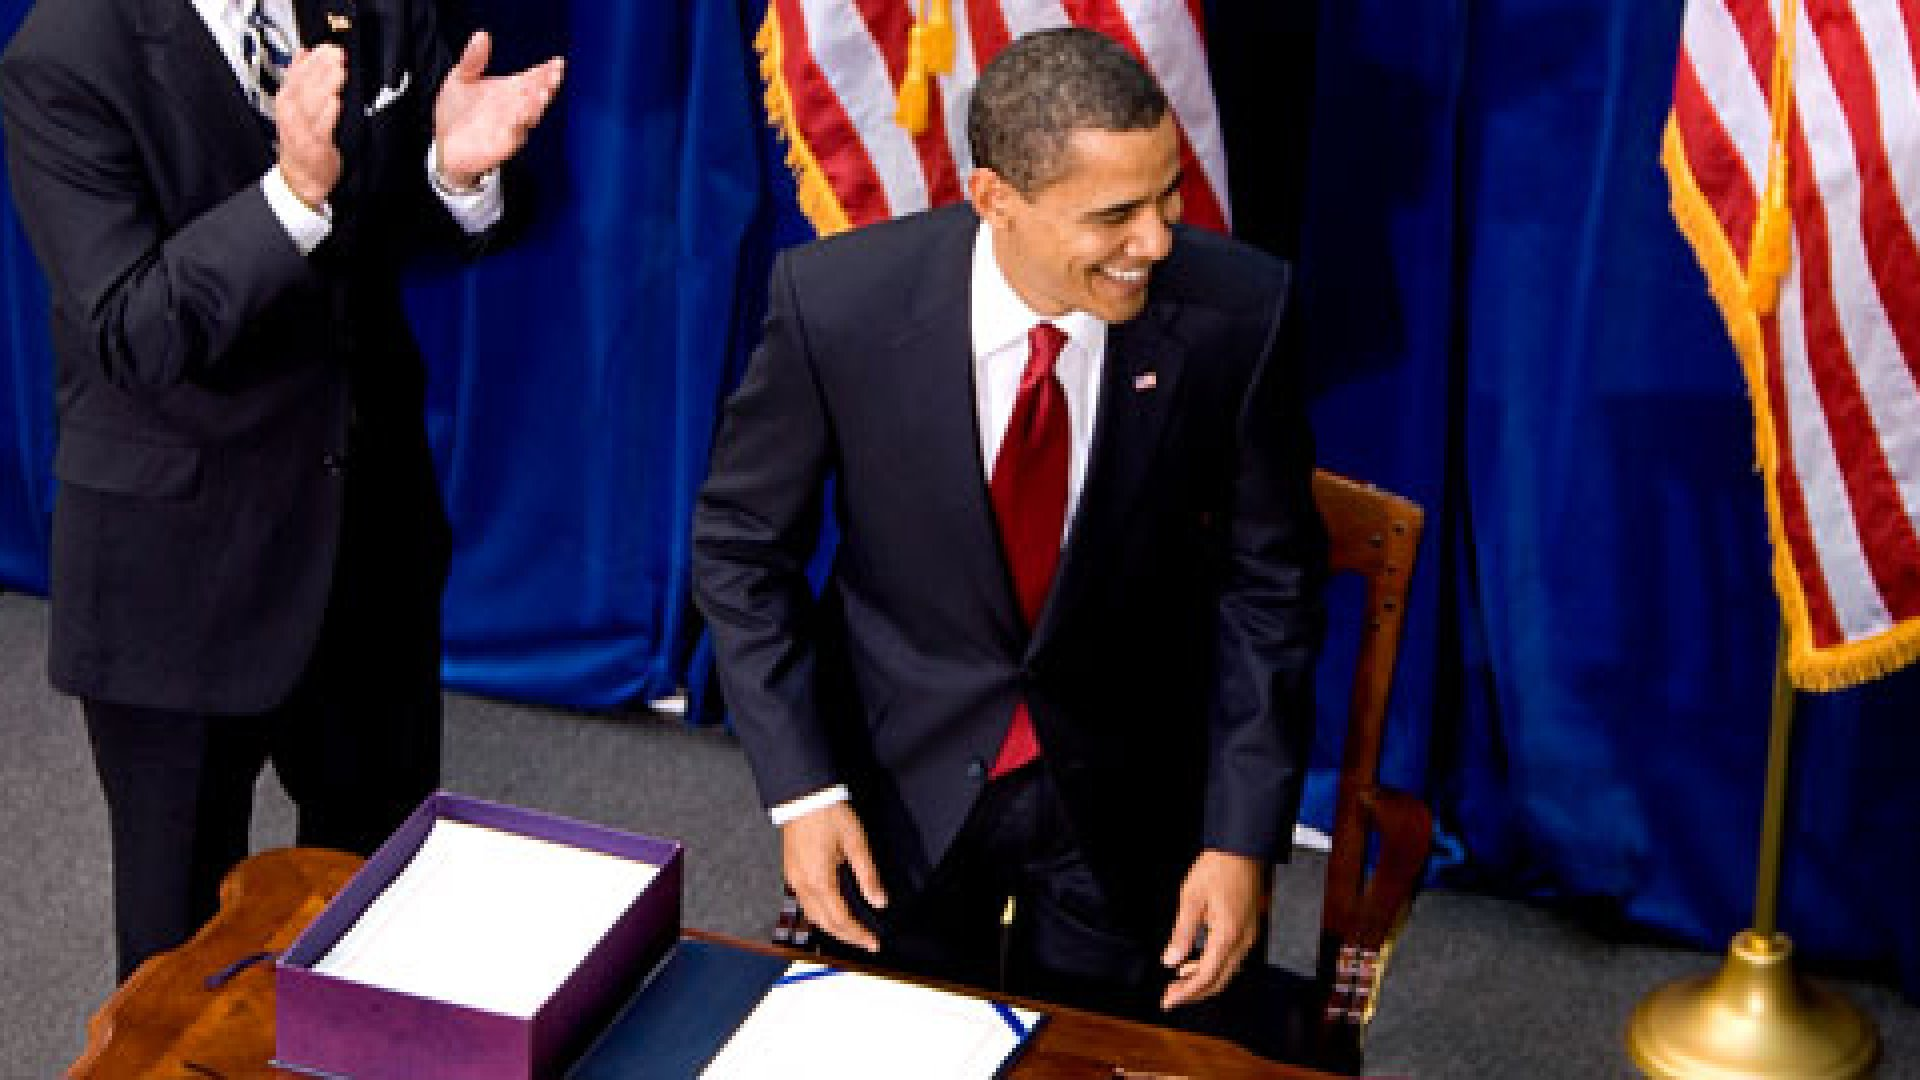 Vice President Joe Biden, left, applauds after U.S. President Barack Obama signed an economic stimulus package into law inside the Museum of Nature and Science in Denver, Colorado, U.S., on Tuesday, Feb. 17, 2009.